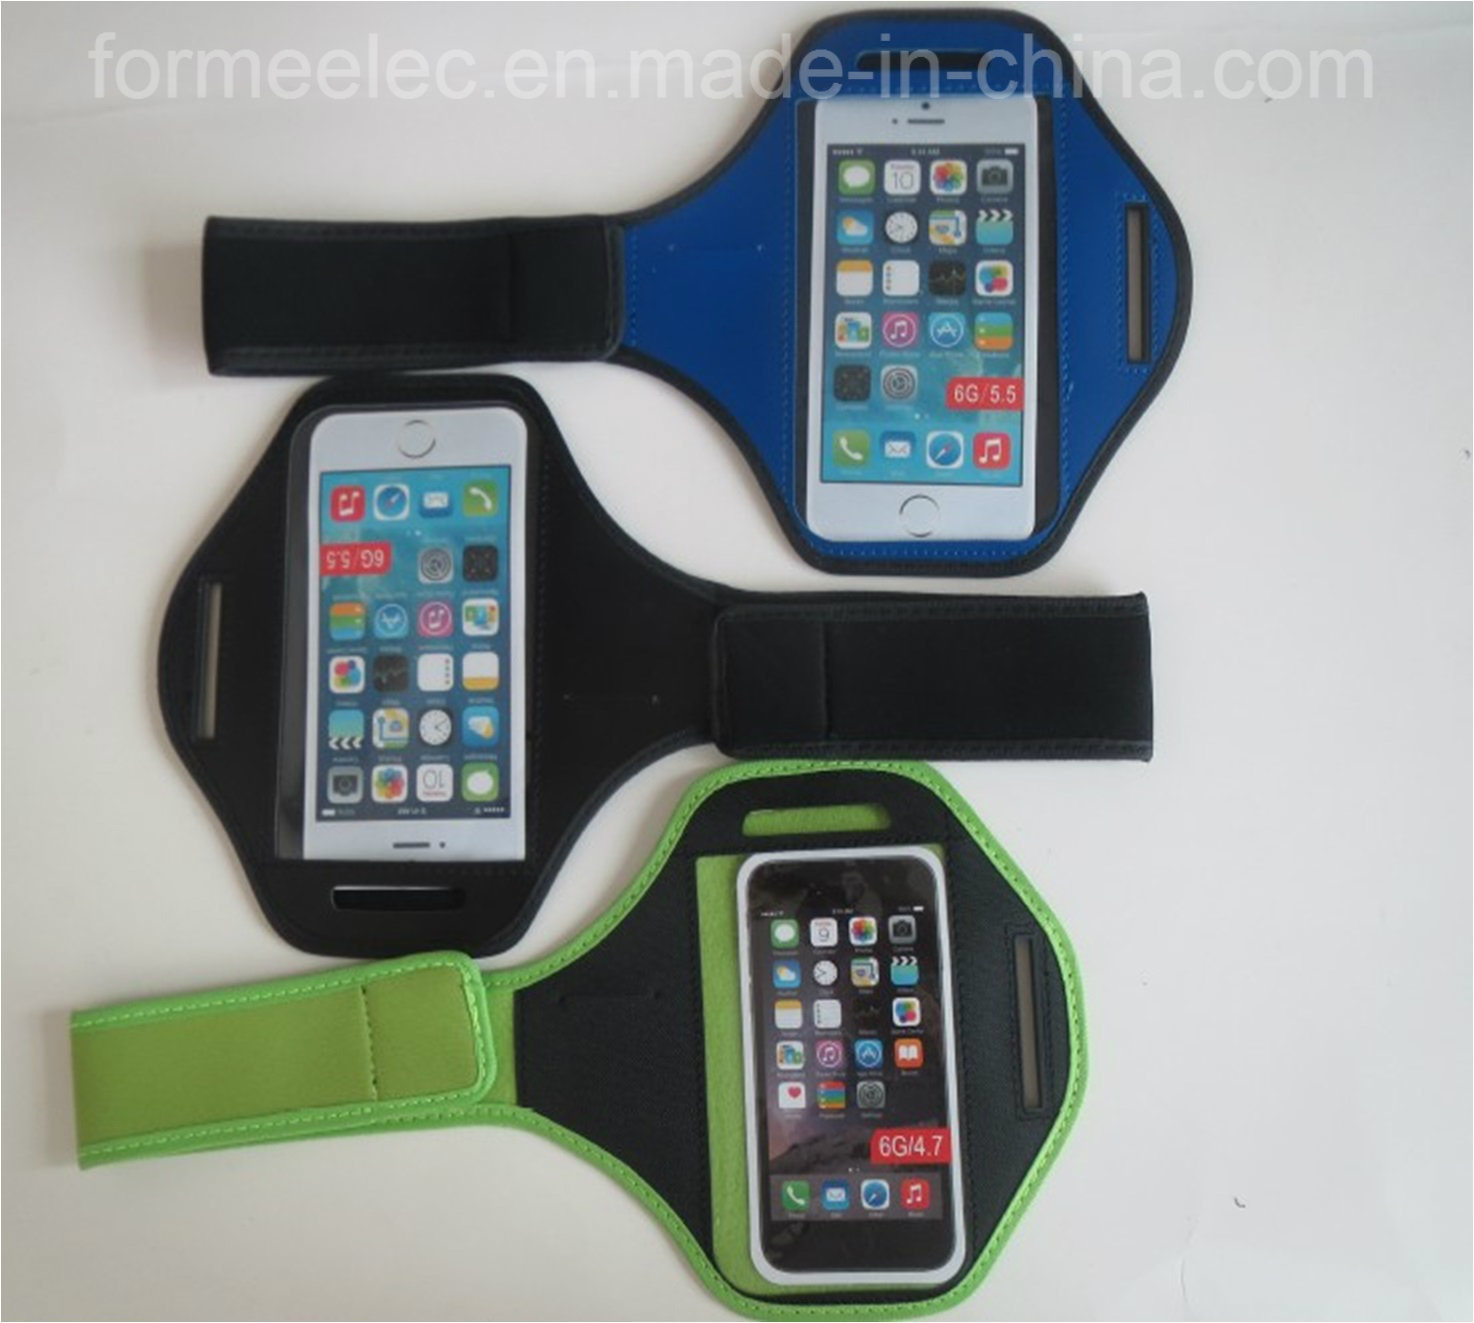 Armband Smart Phone Sports Pocket Mobile Phone Arm Pocket